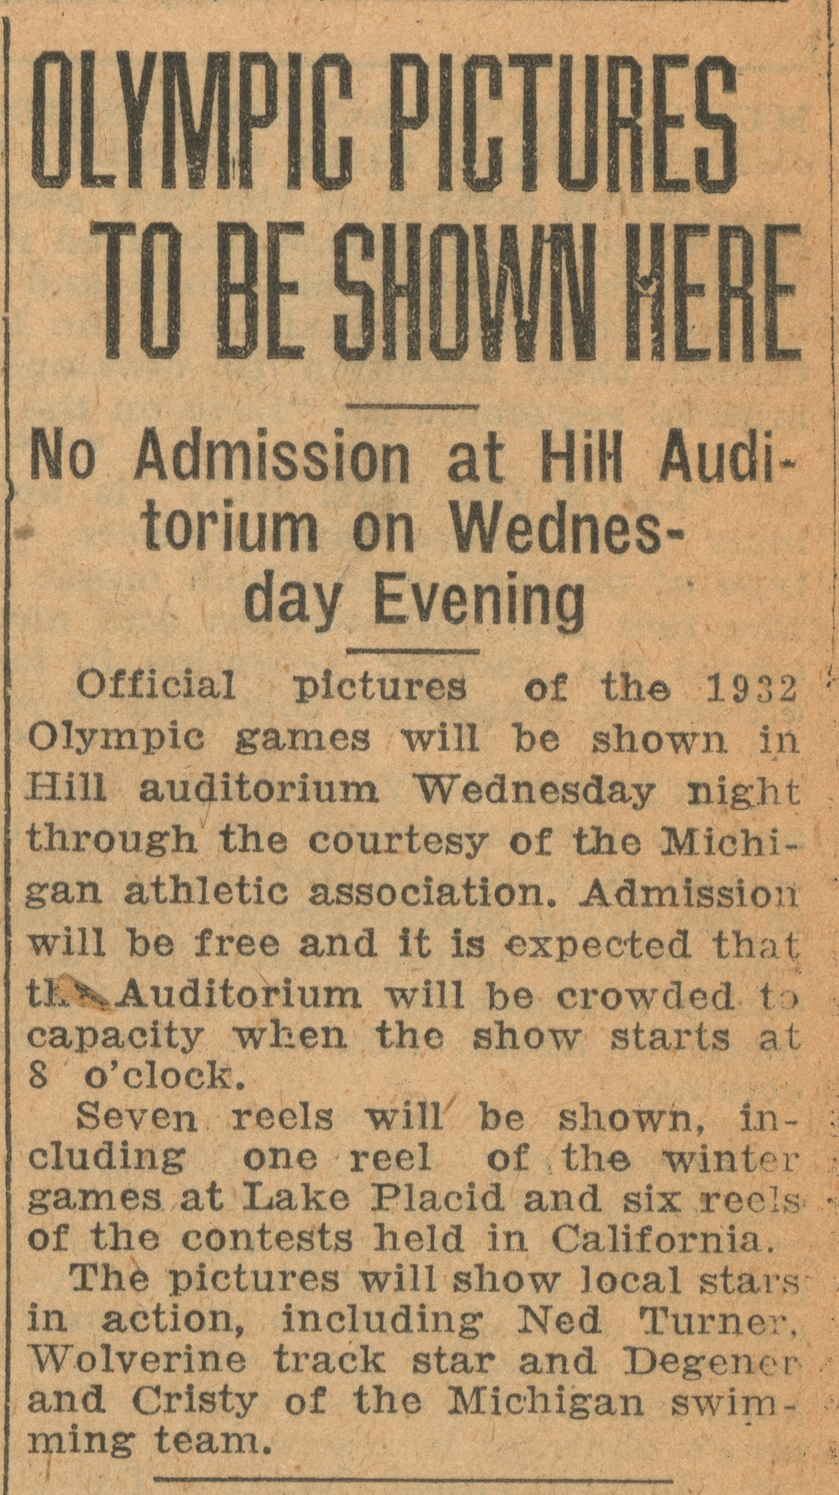 Olympic Pictures To Be Shown Here: No Admission at Hill Auditorium on Wednesday Evening image